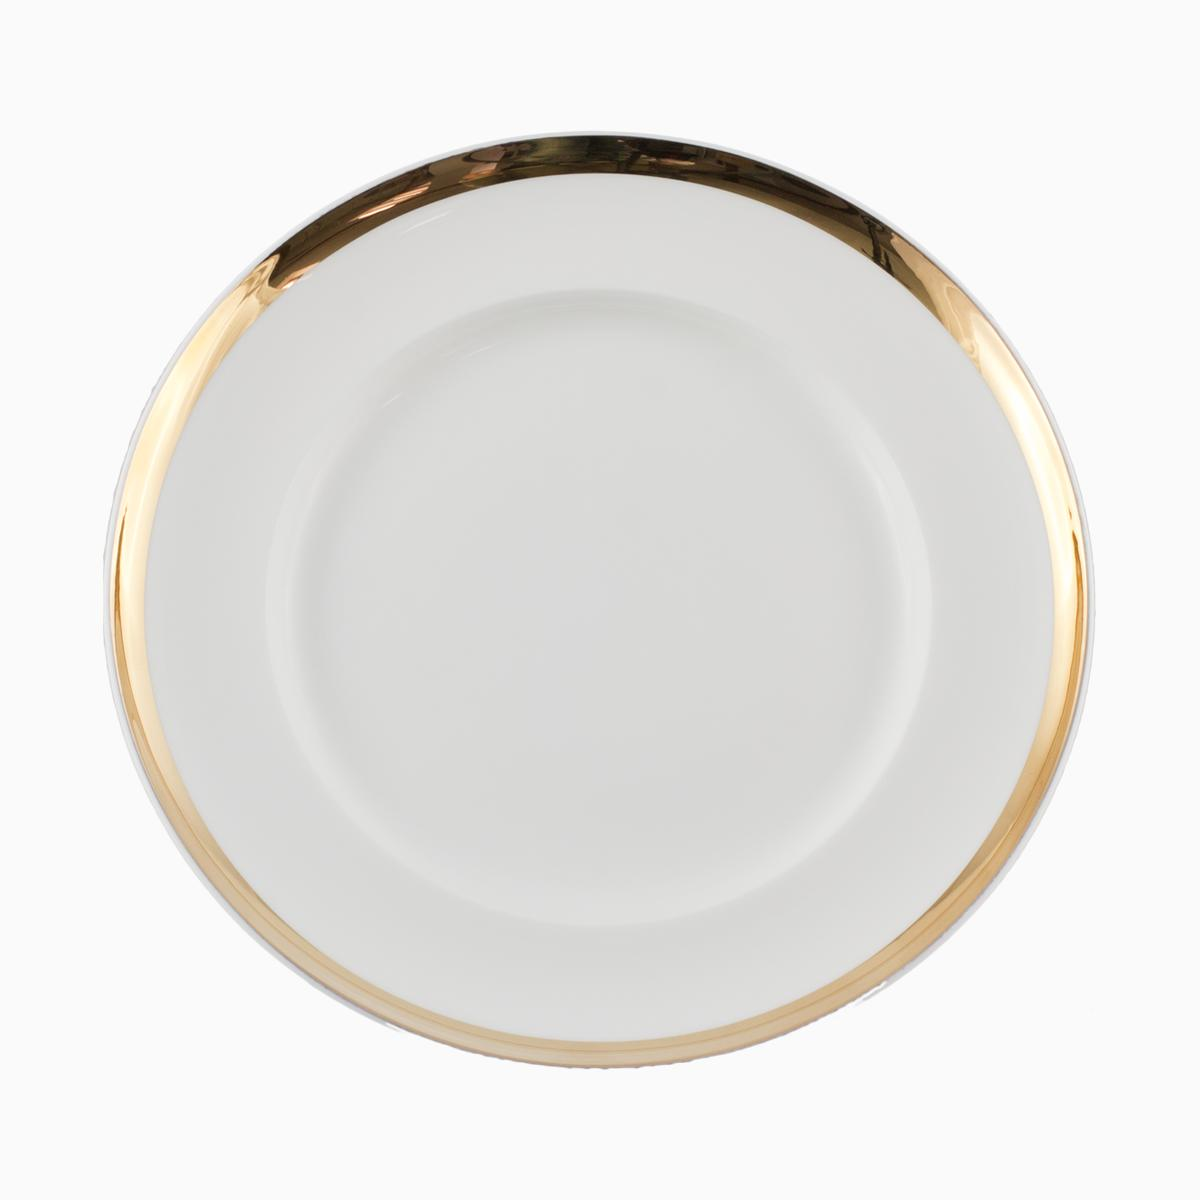 Plate Flat with gold filet